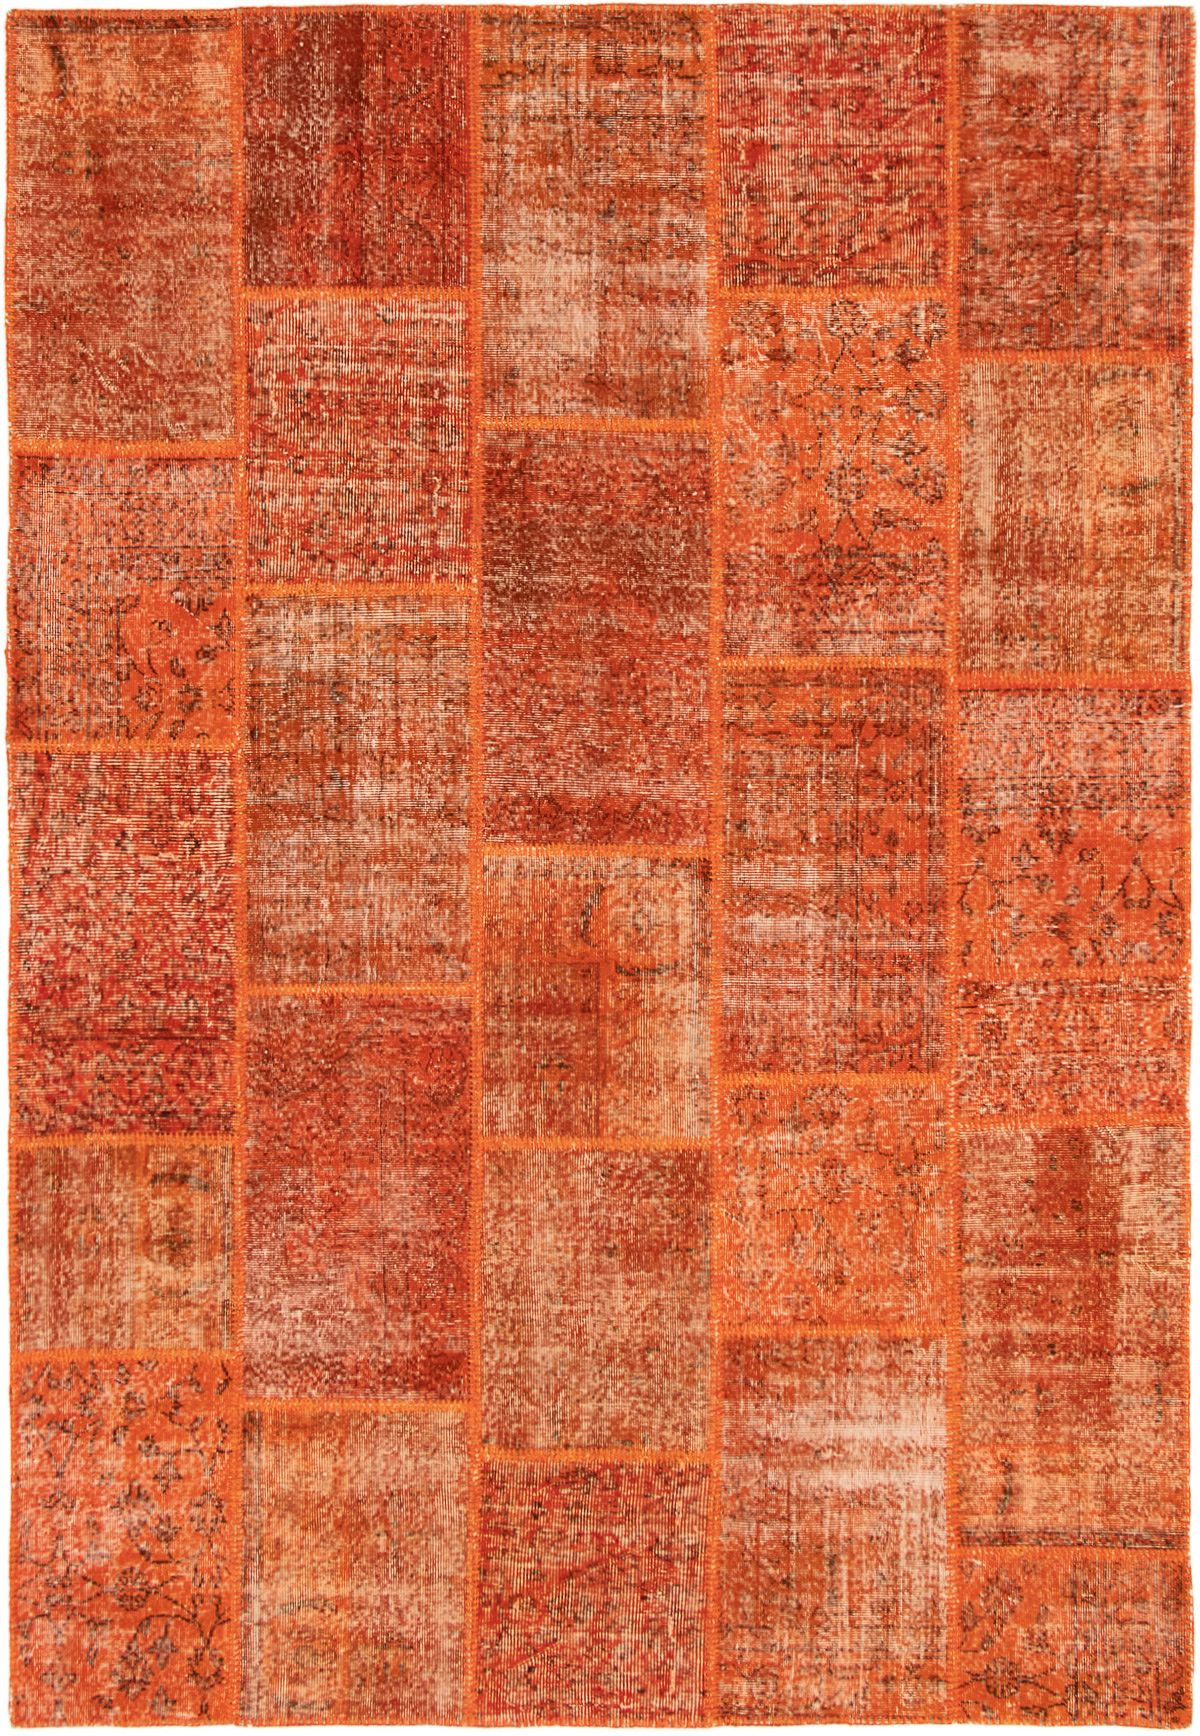 """Hand-knotted Color Transition Patch Burnt Orange Wool Rug 6'7"""" x 9'10"""" Size: 6'7"""" x 9'10"""""""